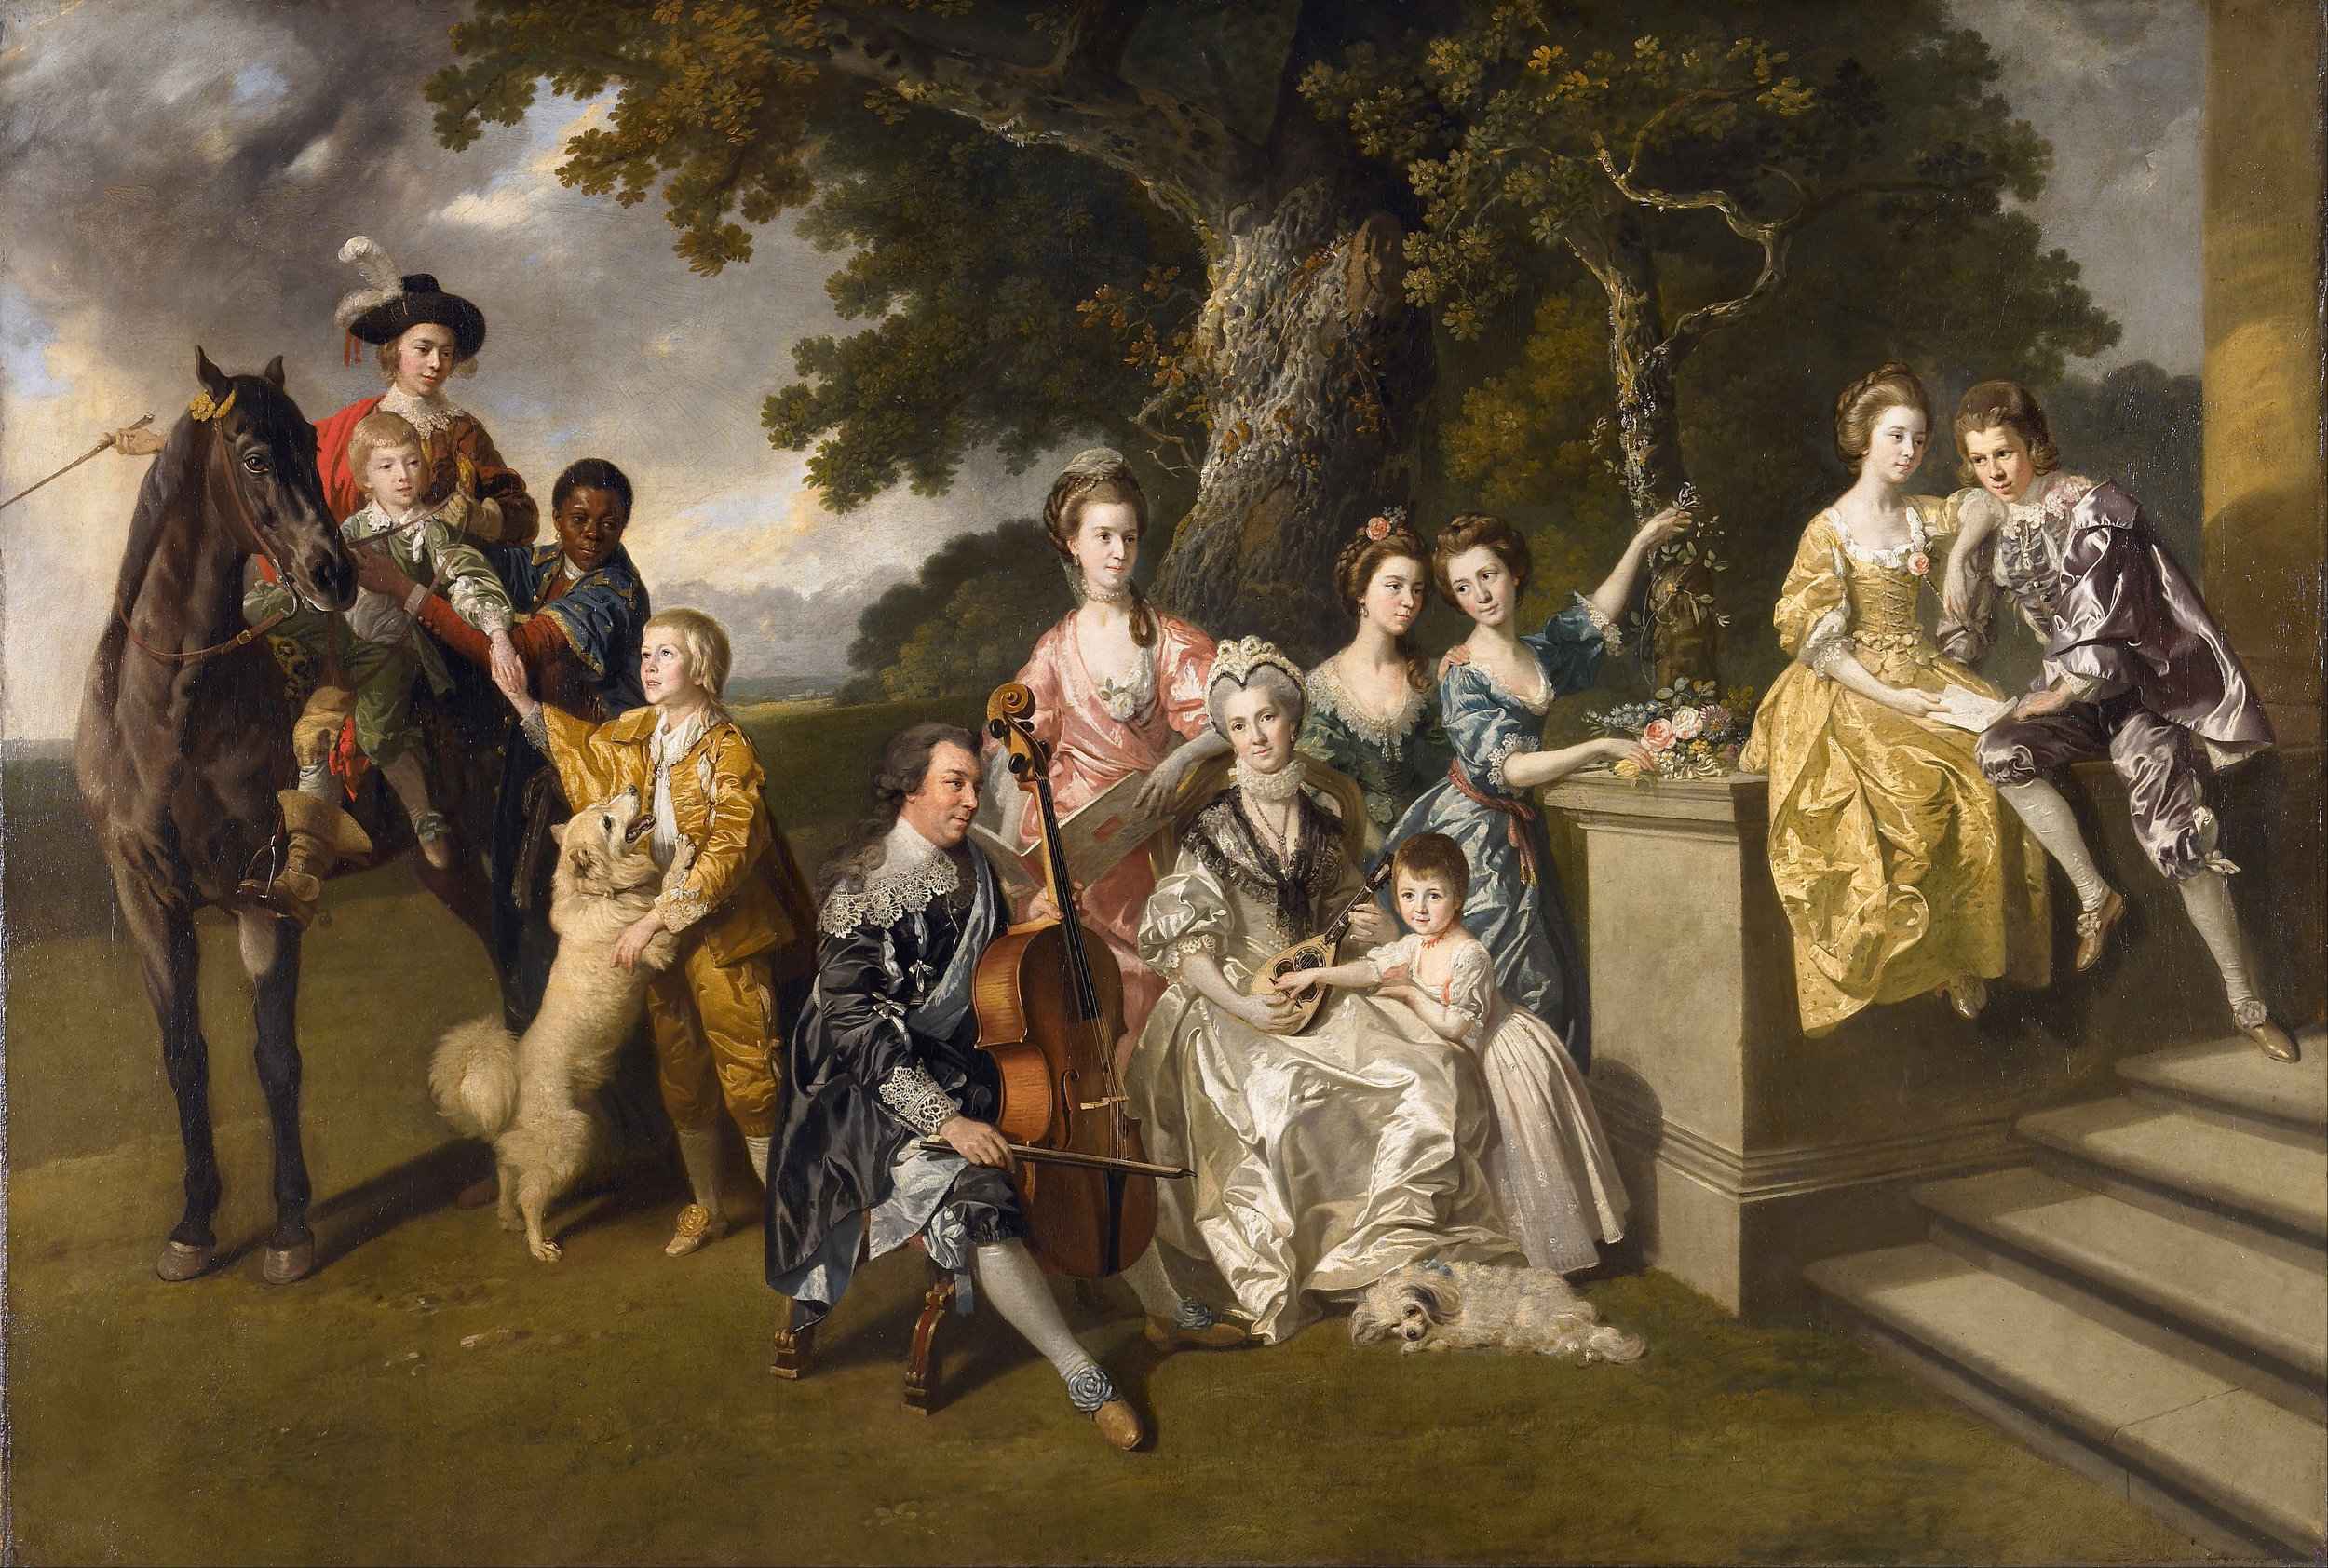 Johan Zoffany. The Family of Sir William Young. ca. 1766-70. oil on canvas. 114.3 x 167.8cm. Walker Art Gallery. WAG2395